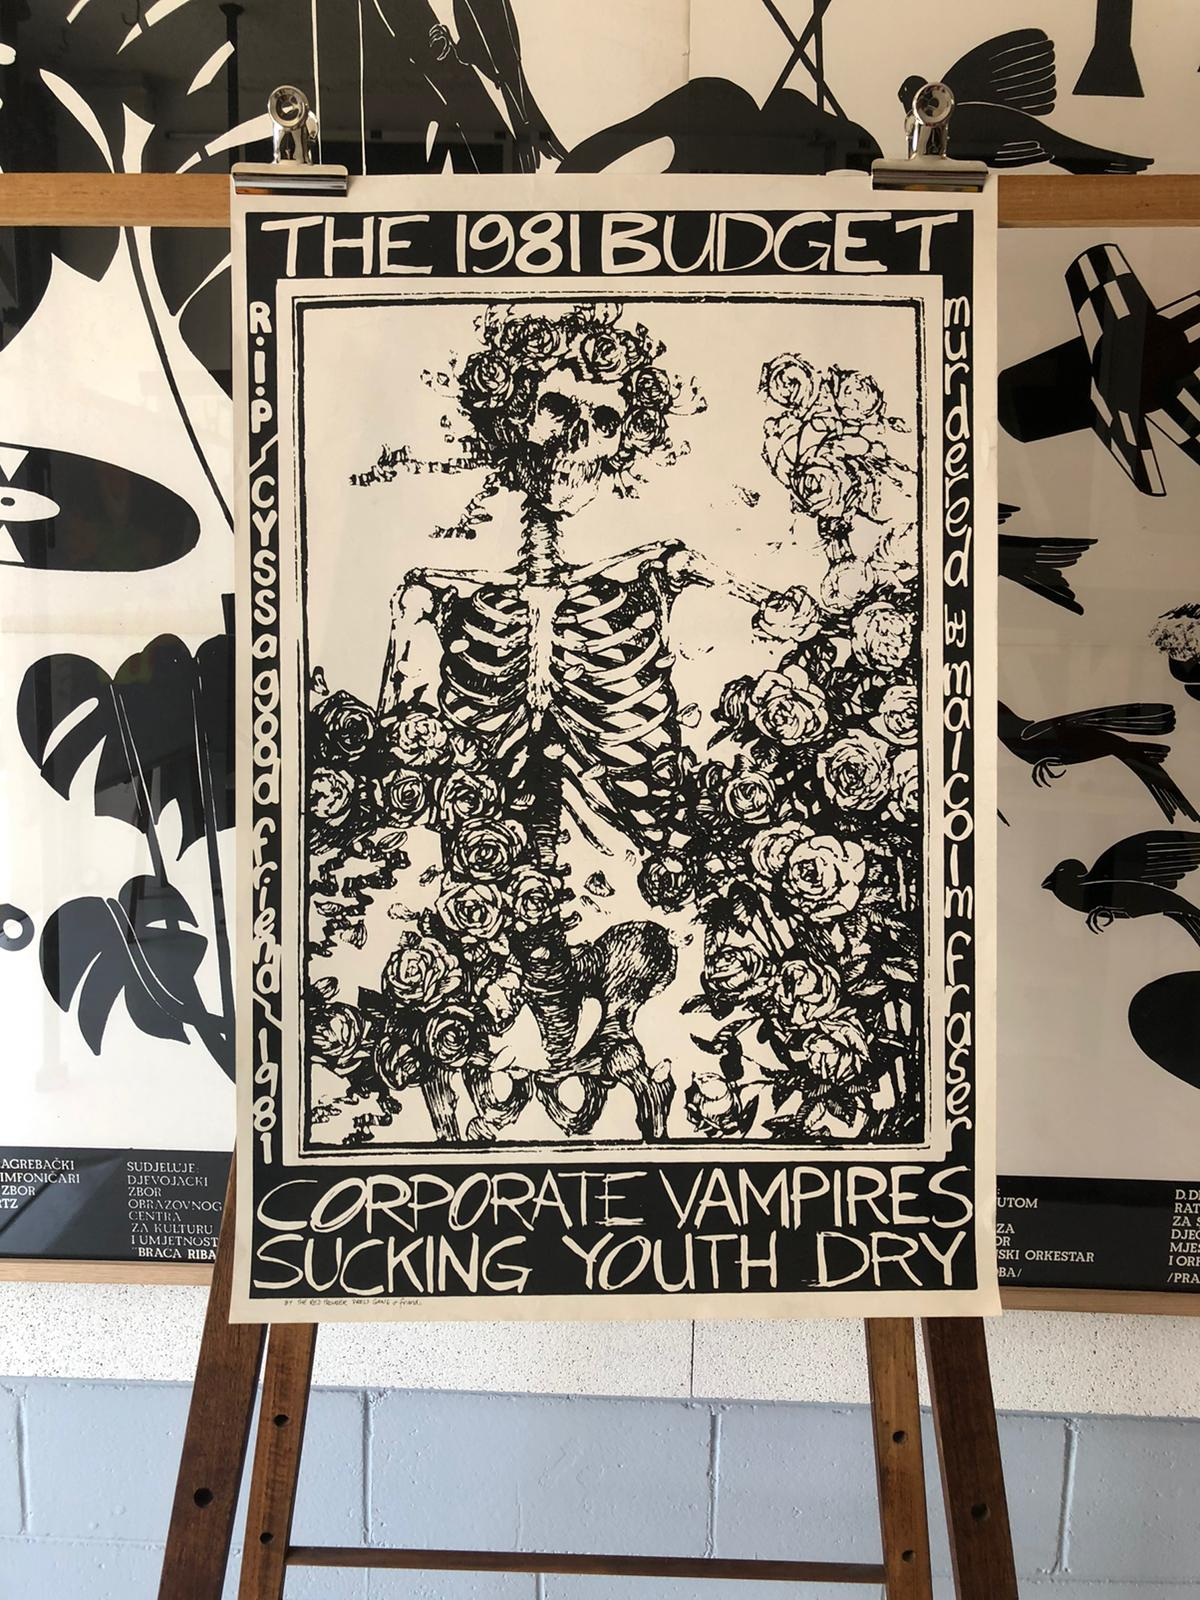 'Corporate Vampires Sucking Youth Dry' 1981 Budget Protest Lithograph